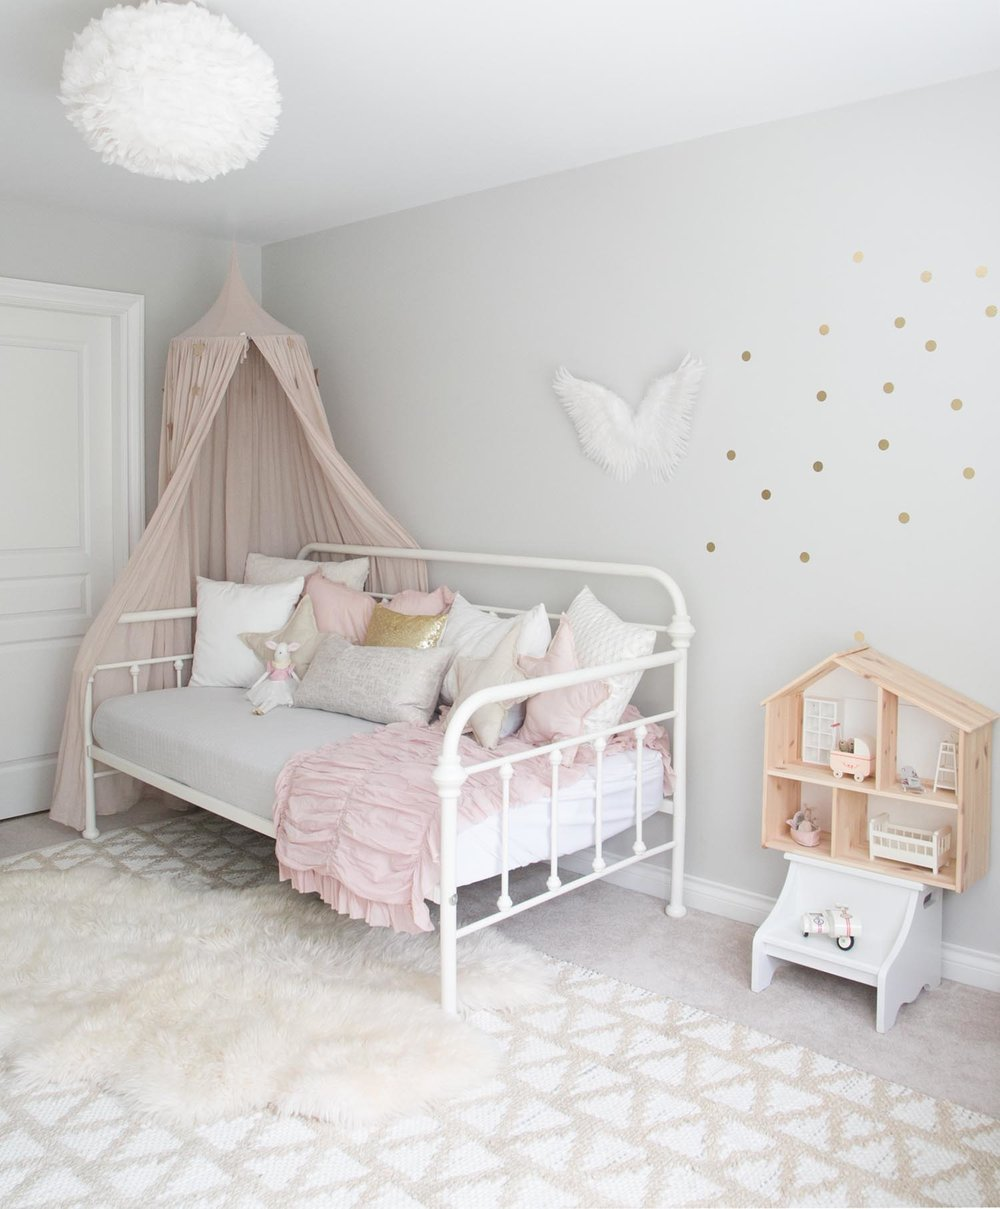 ELLA\'S BIG GIRL ROOM — WINTER DAISY interiors for children